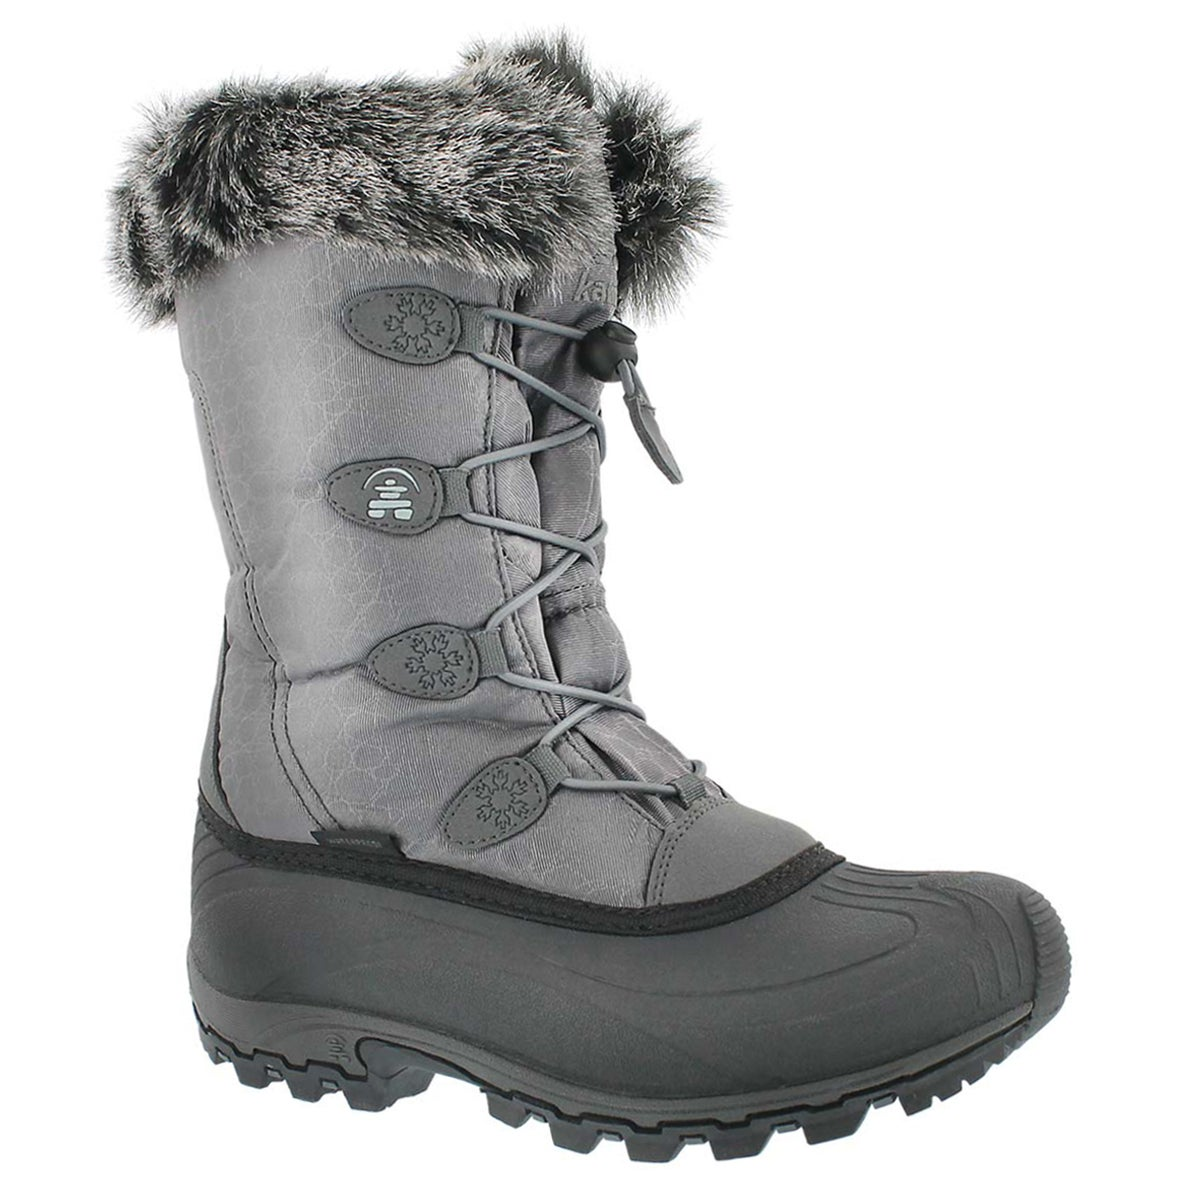 742ae95a5e0 Women's Kamik Momentum Snow Boots | MIT Hillel